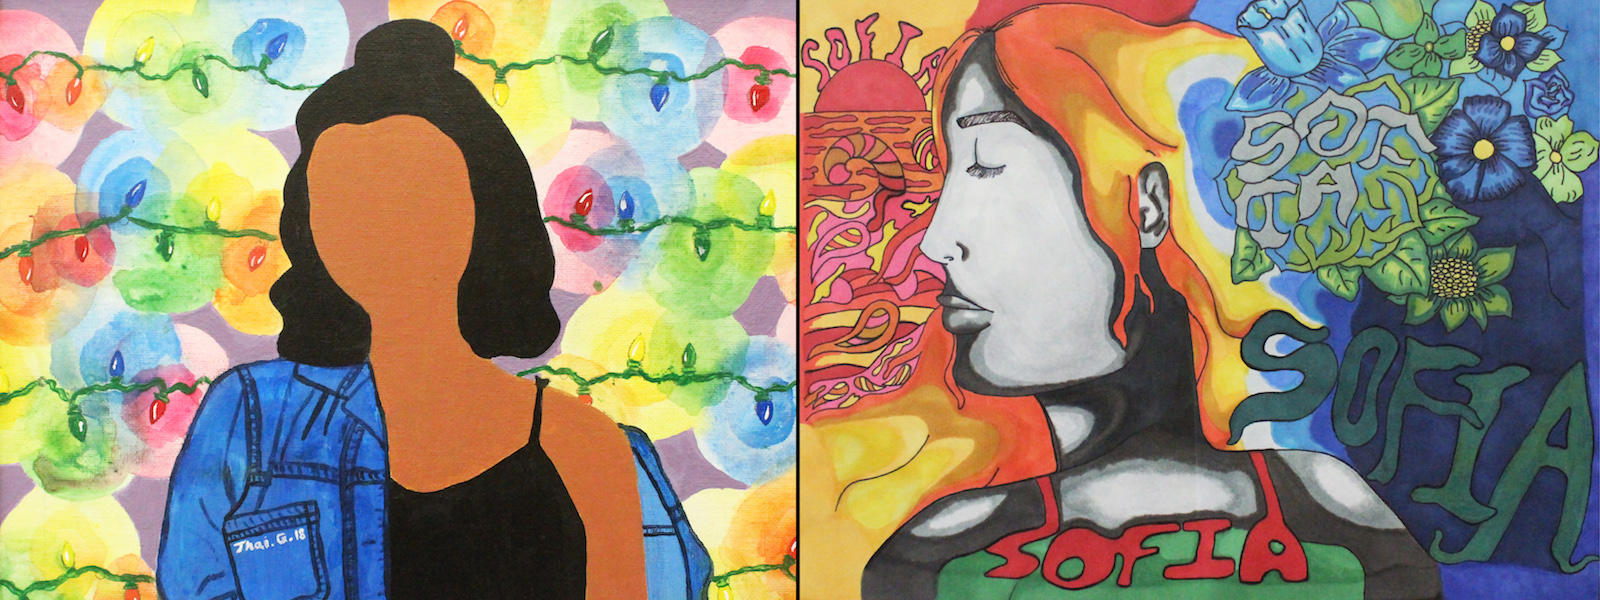 Two award-winning paintings by EPHS students